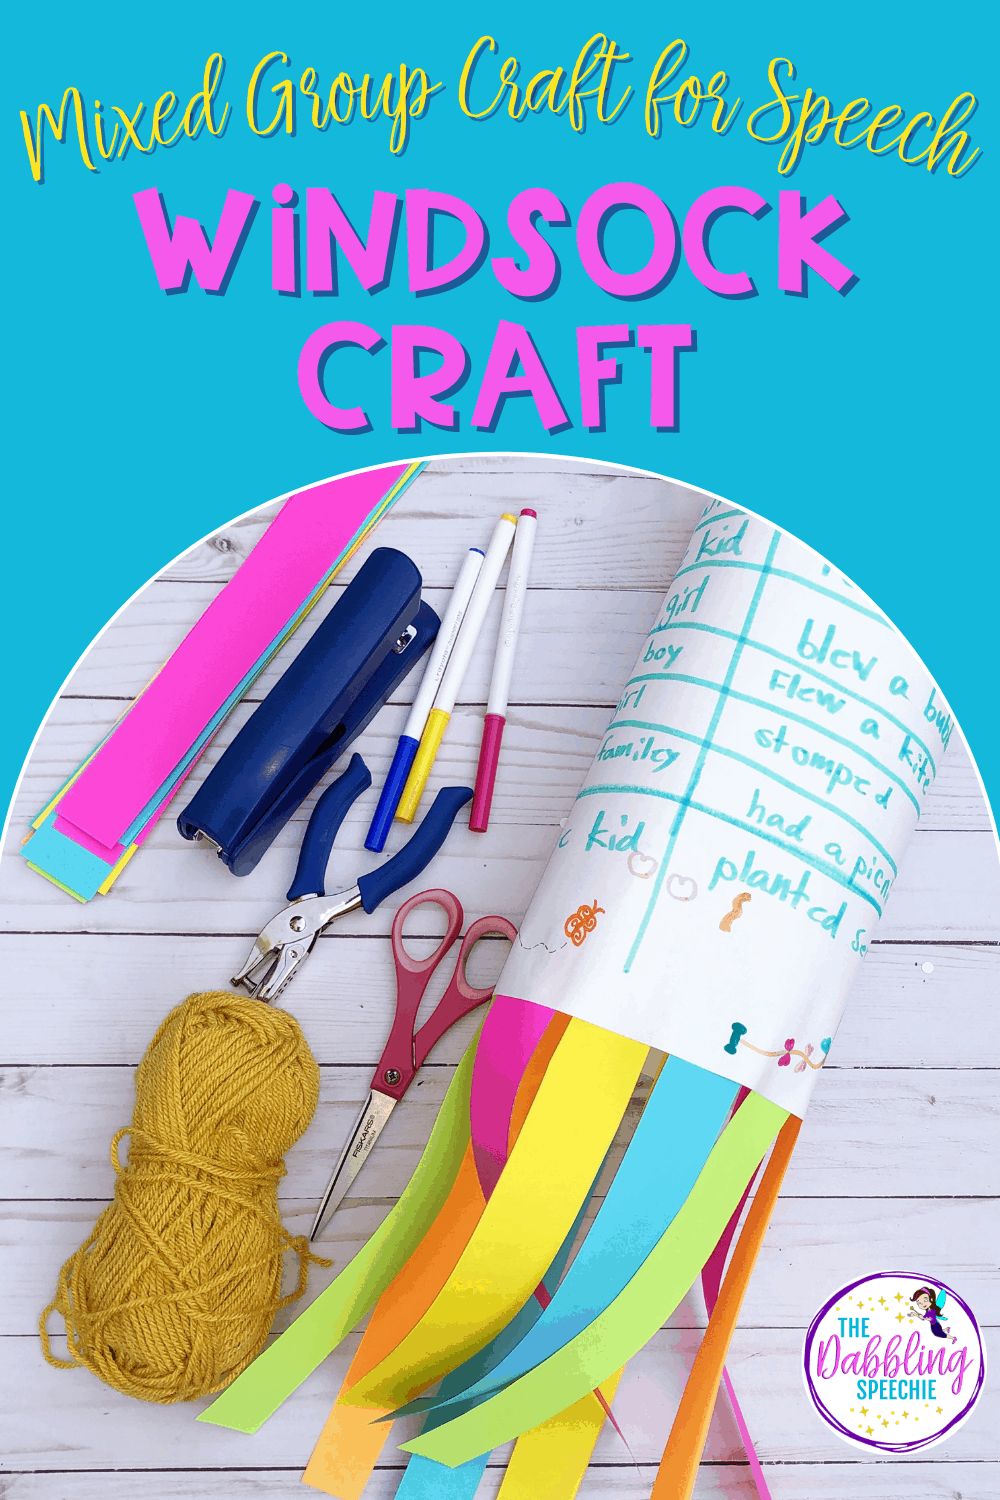 Windsock Craft For Kids In Speech Therapy